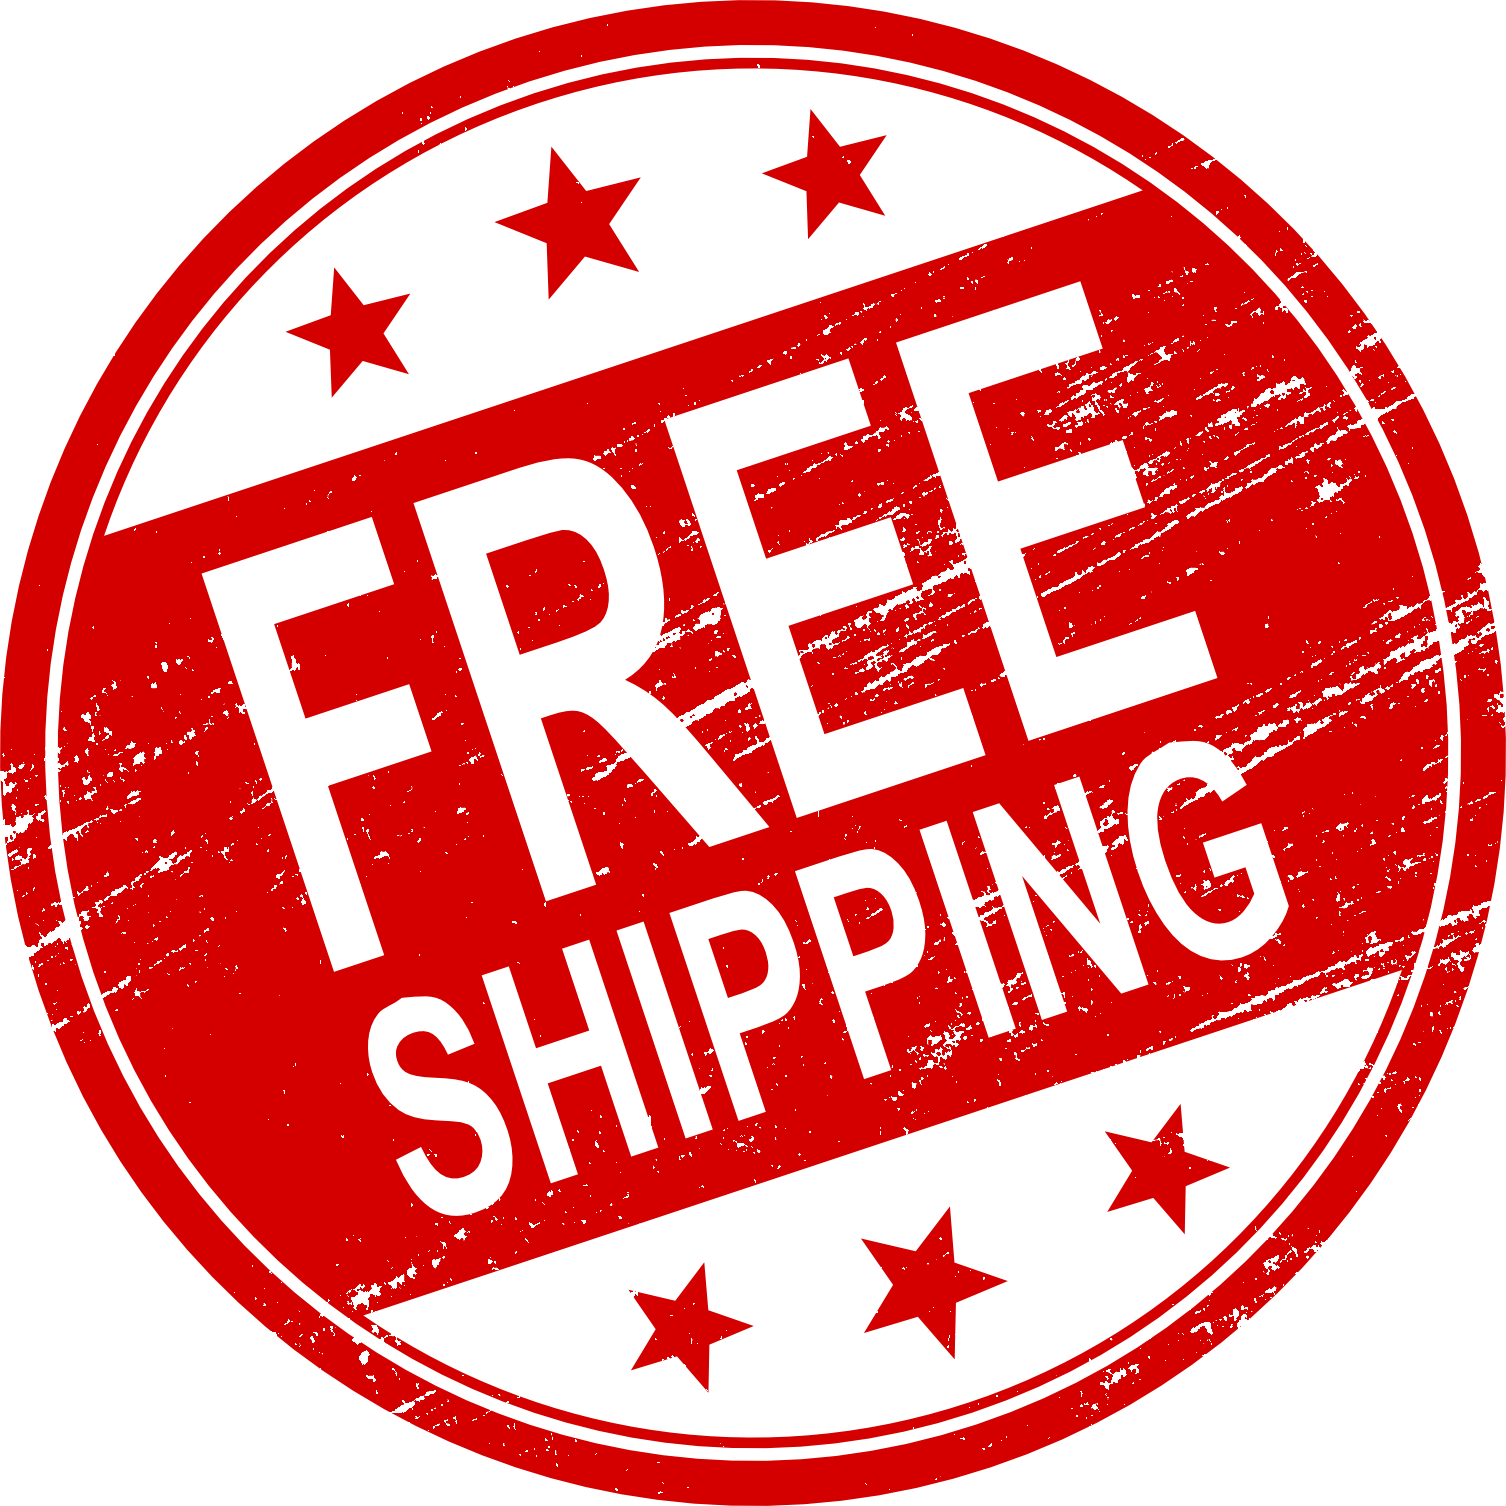 Download Free Shipping Clipart #46932.